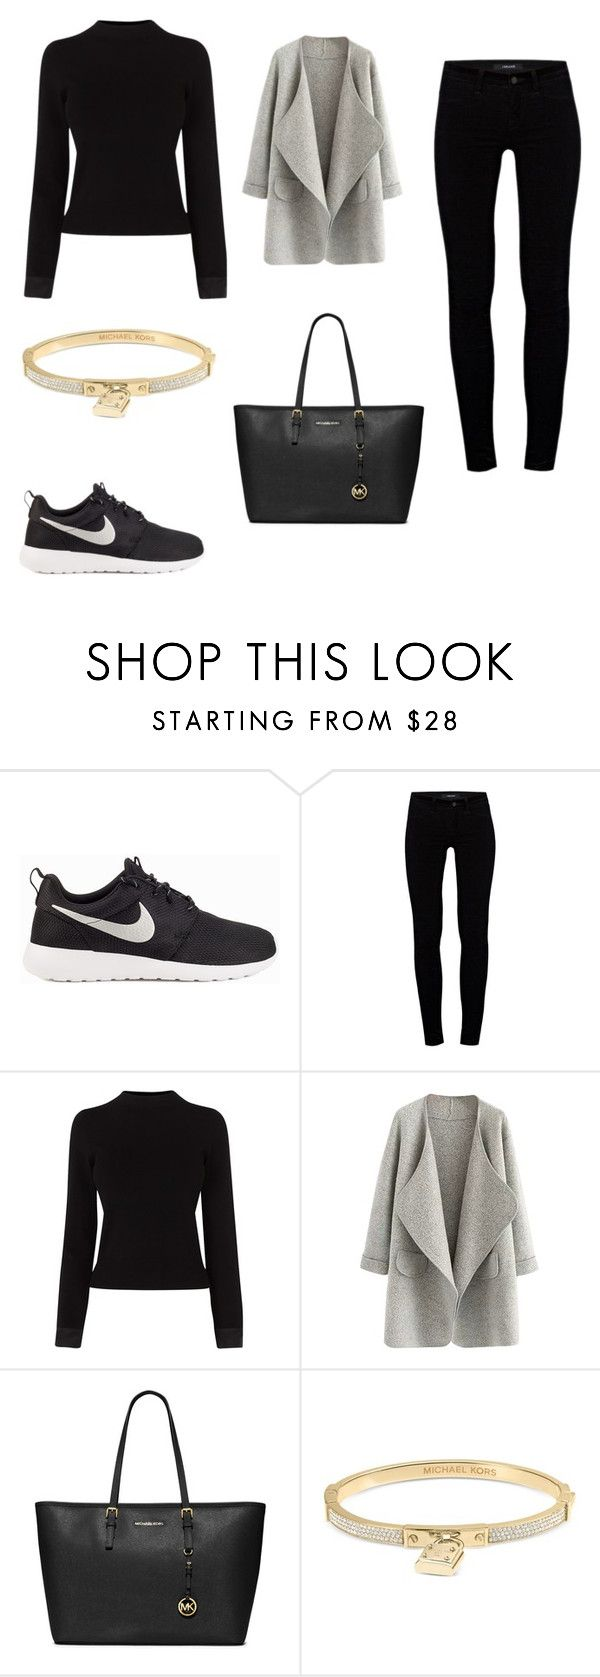 """Untitled #16"" by mariachun on Polyvore featuring NIKE, J Brand, Karen Millen, MICHAEL Michael Kors and Michael Kors"